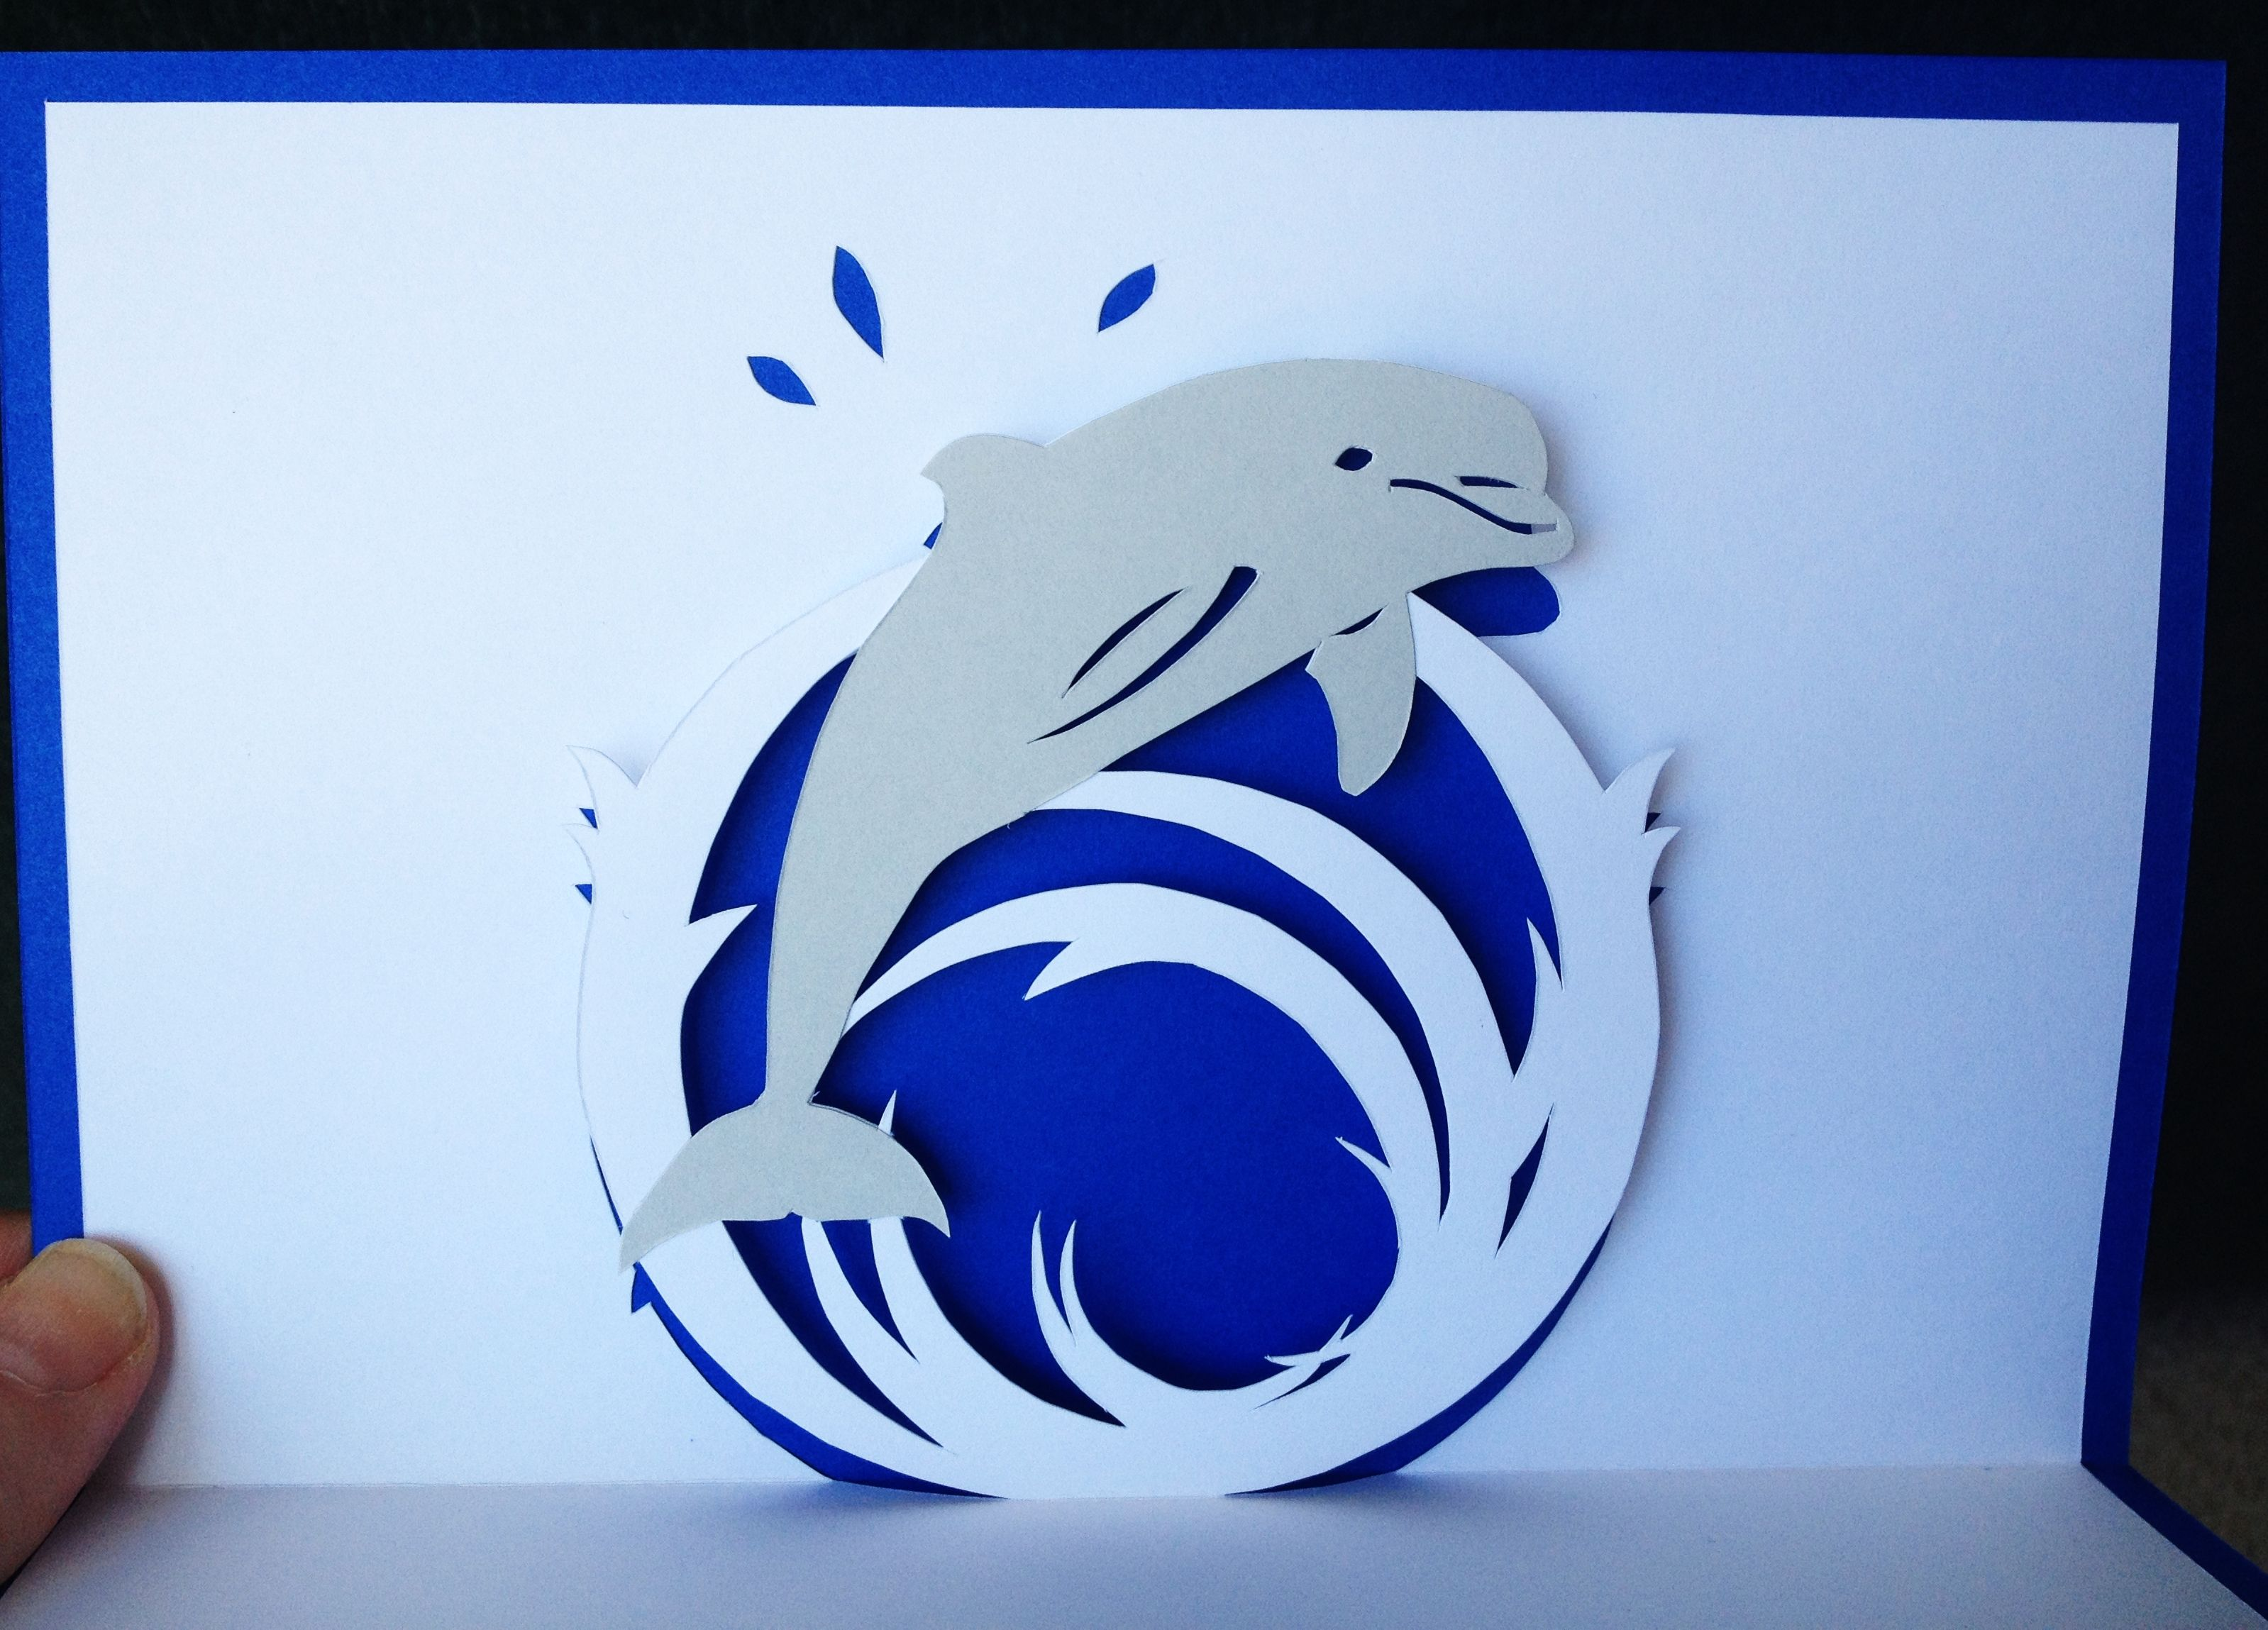 Jumping Dolphin Pop Up Card Template From Cahier De Kirigami No 2 Pop Up Card Templates Cards Handmade Pop Up Cards